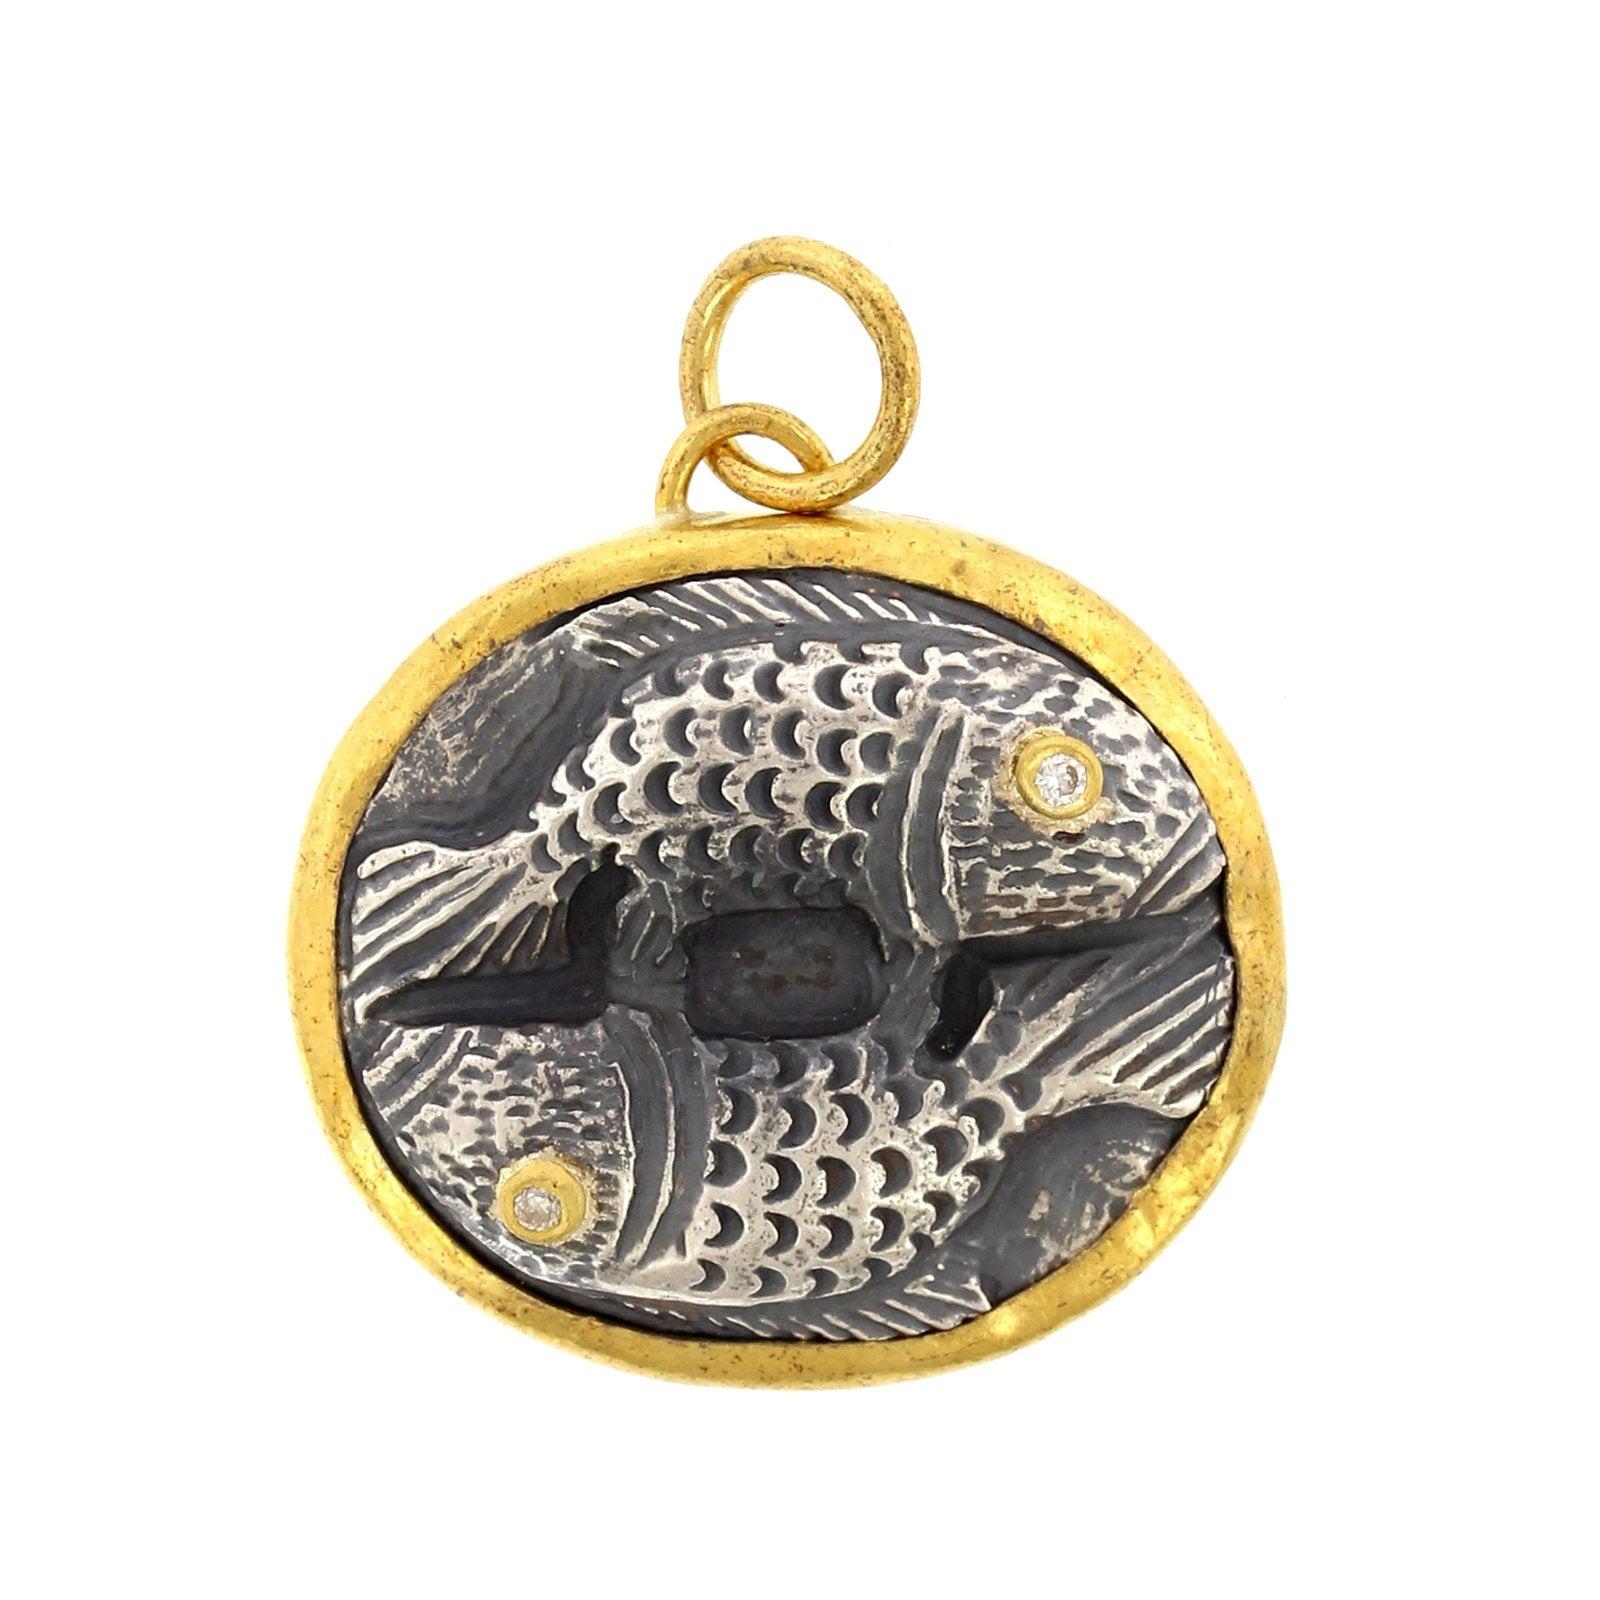 24K Yellow Gold and Sterling Silver Double Fish Charm